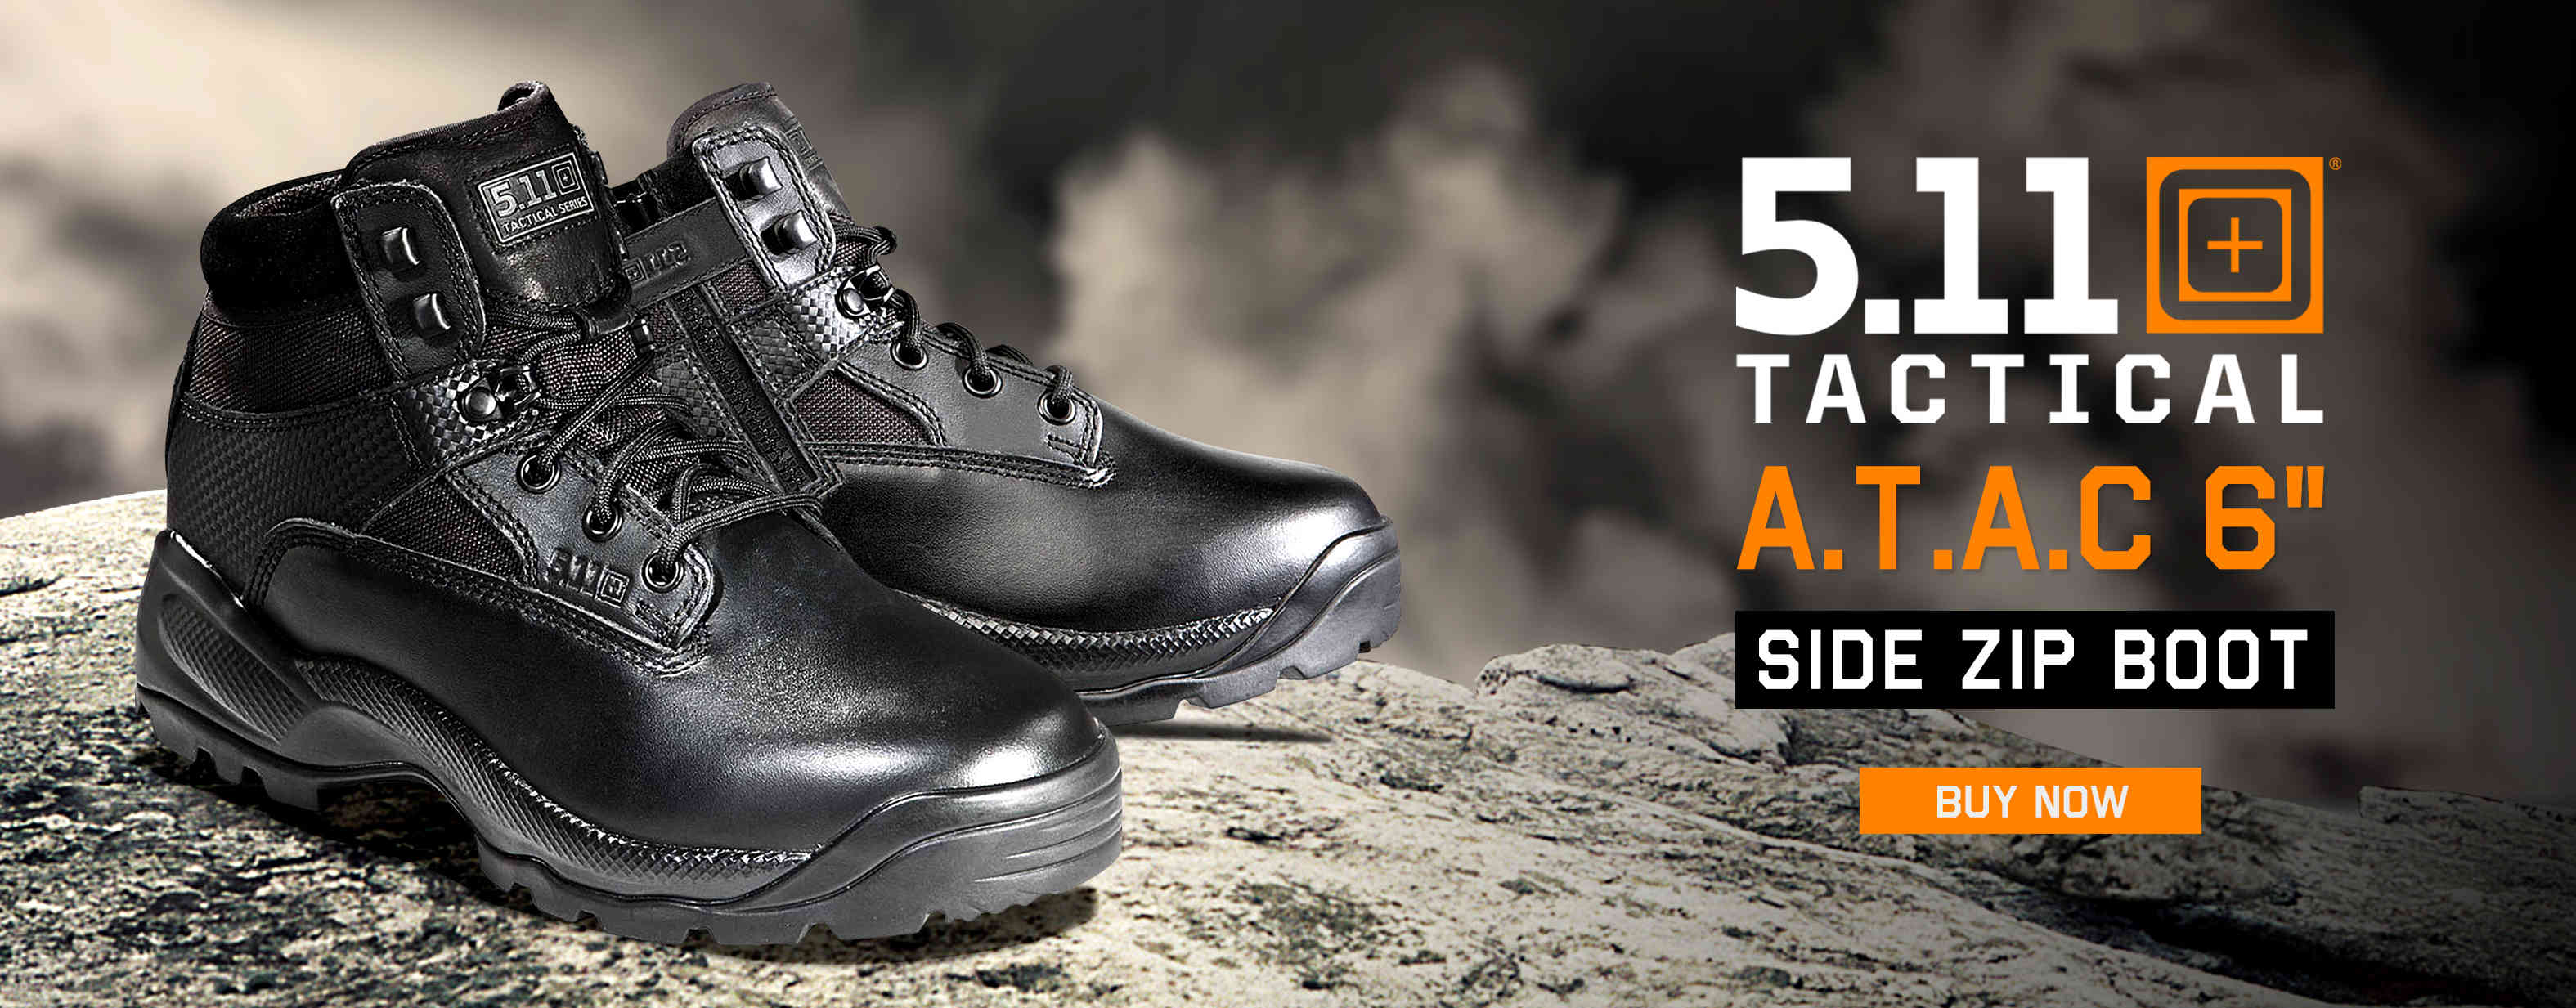 Footwear - Tactical Boots - Tactical Asia - Philippines 5ea44e046